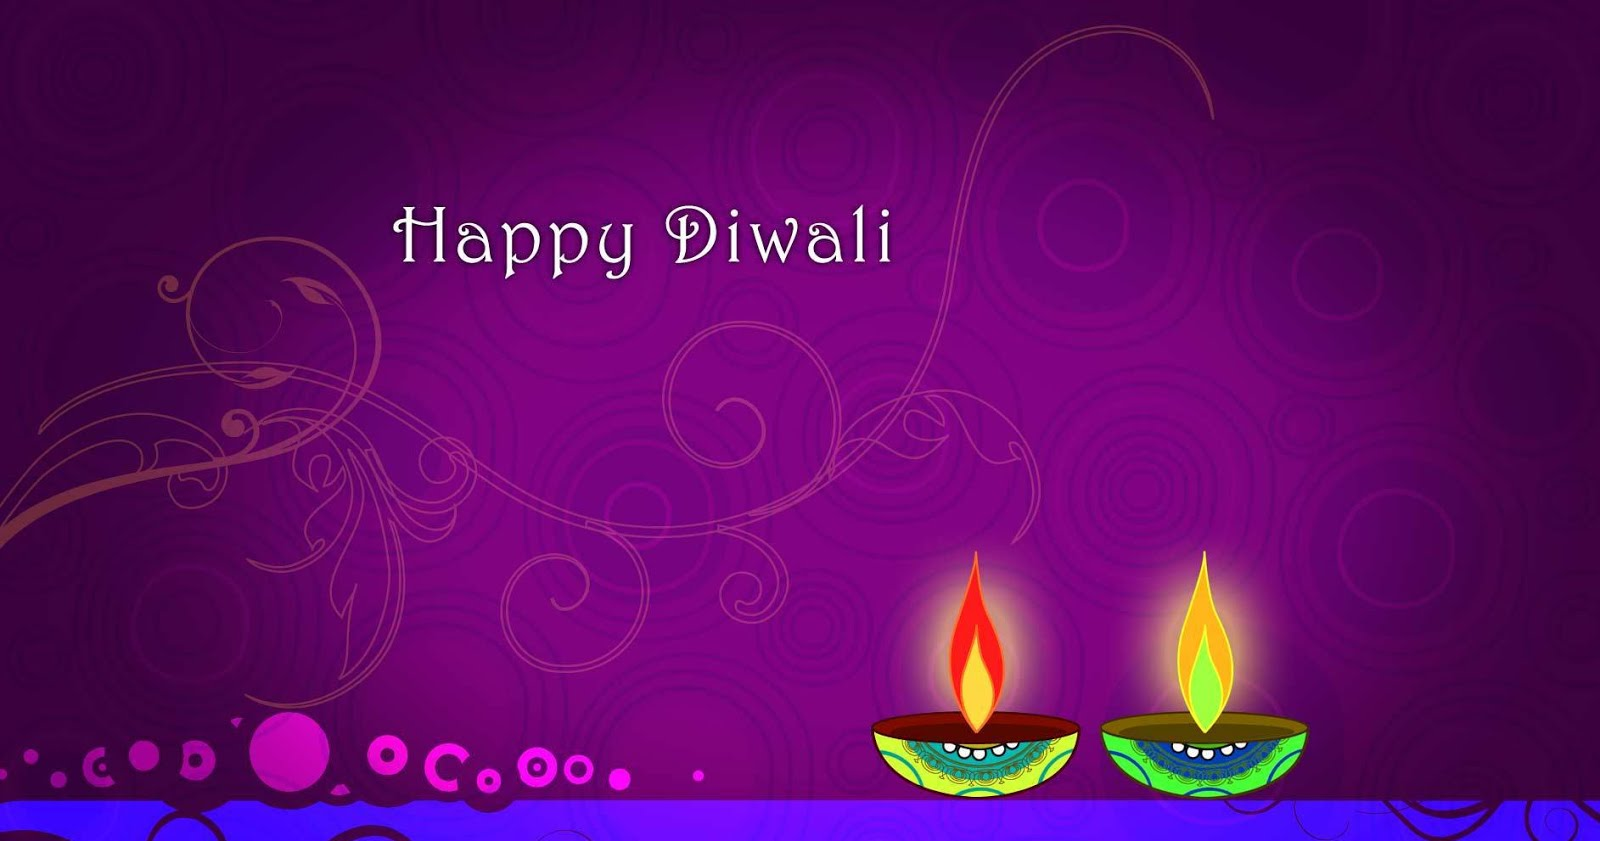 Happy Diwali And New Year Wallpapers: Happy New Year, Images, Photos, Wallpapers, SMS, Wishes